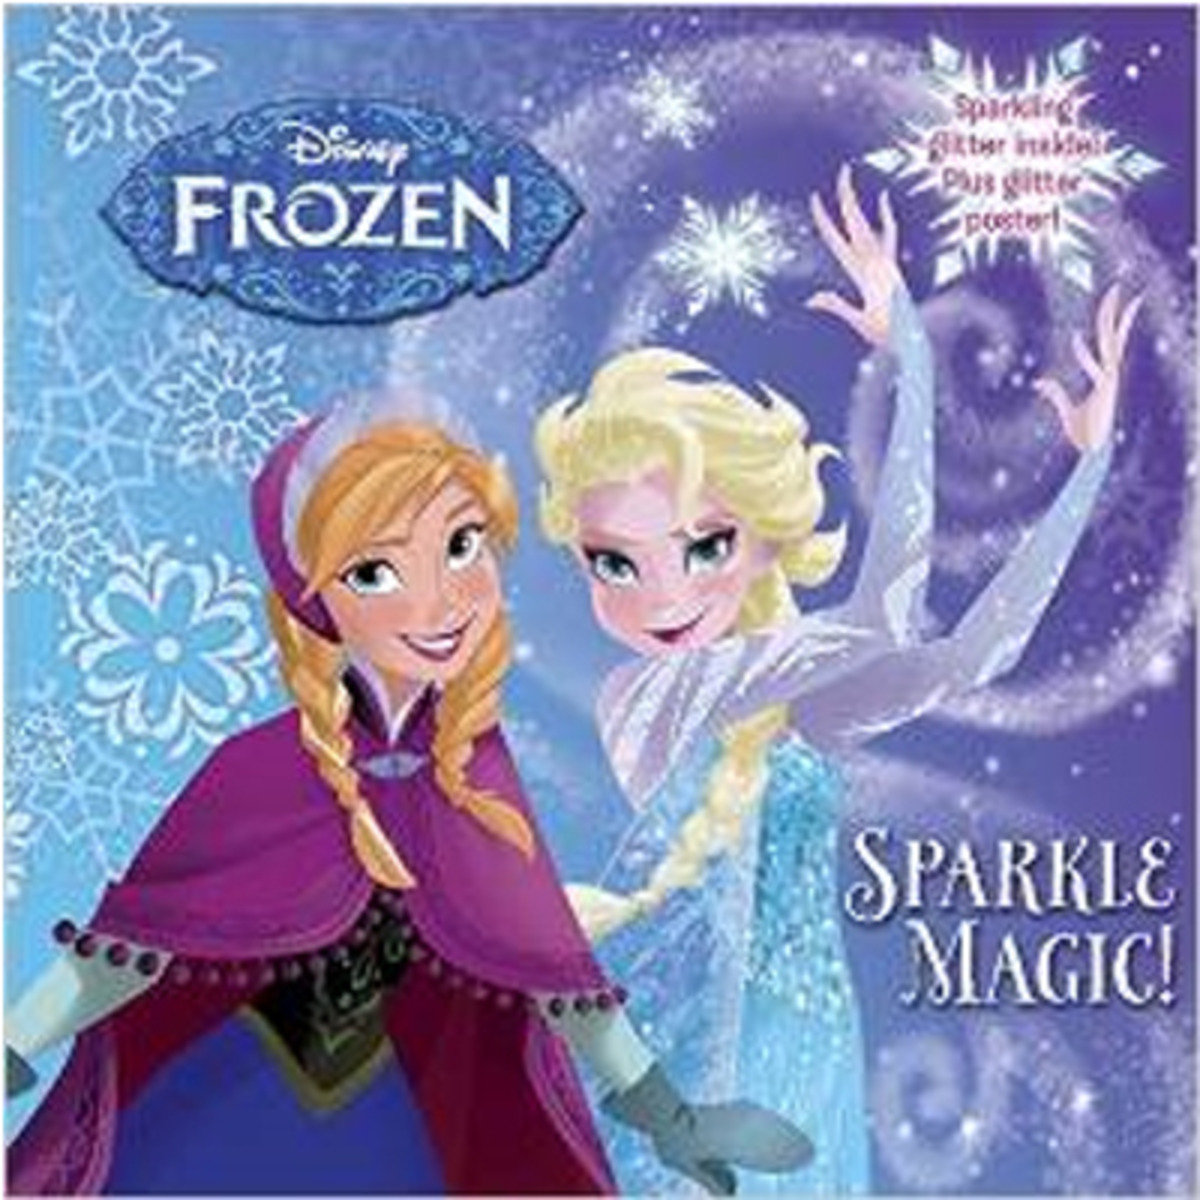 FROZEN: SPARKLE MAGIC! 9780736433662